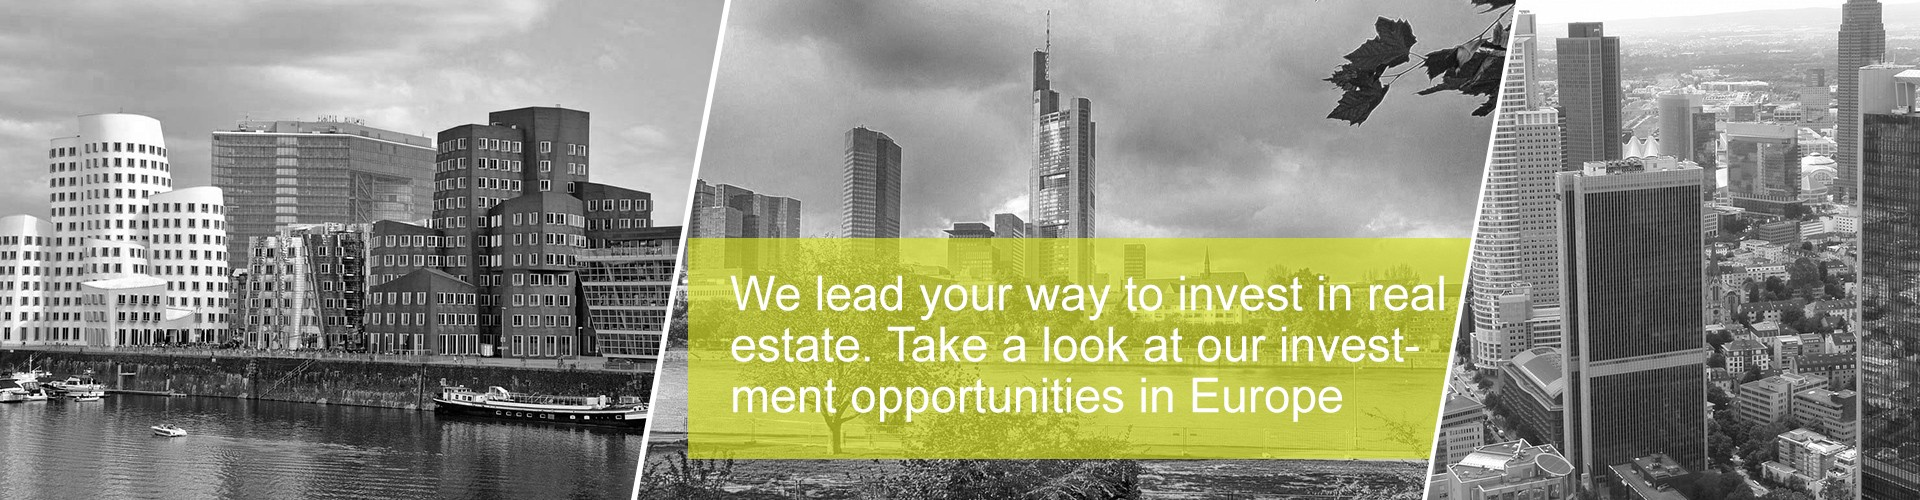 We lead your way to invest in real estate. Take a look at our investment opportunities in Europe